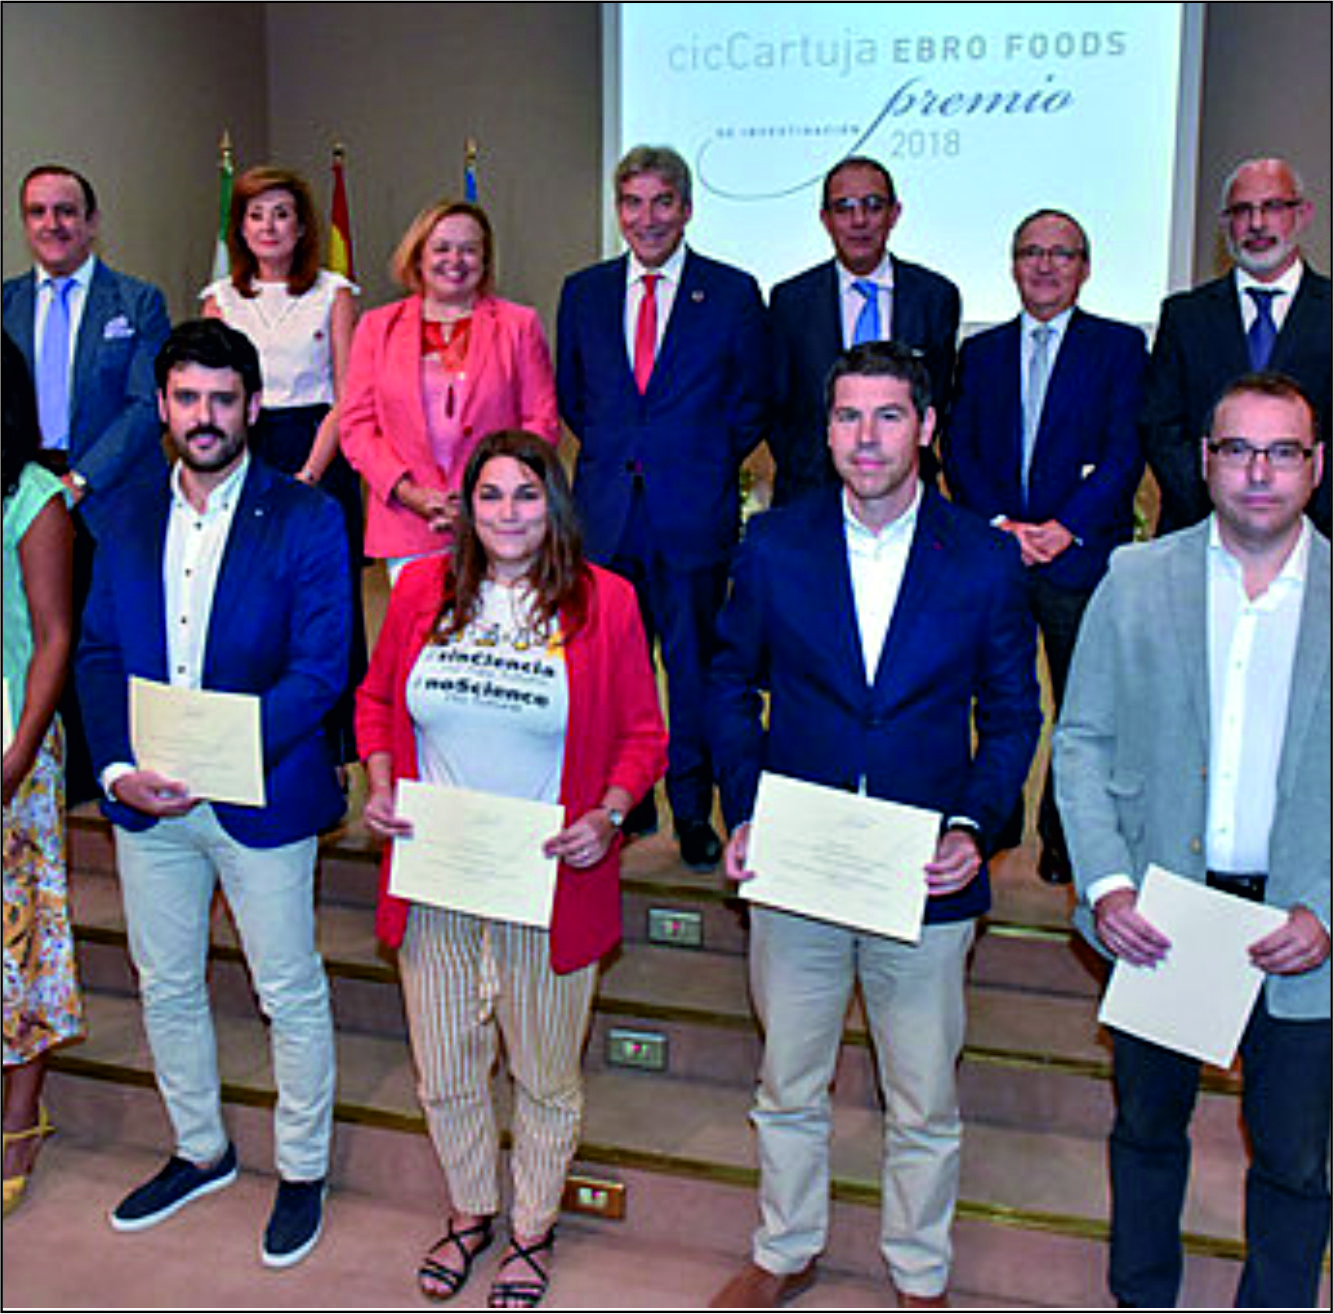 EbroFoods Prize. September 26, Sevilla (Spain)